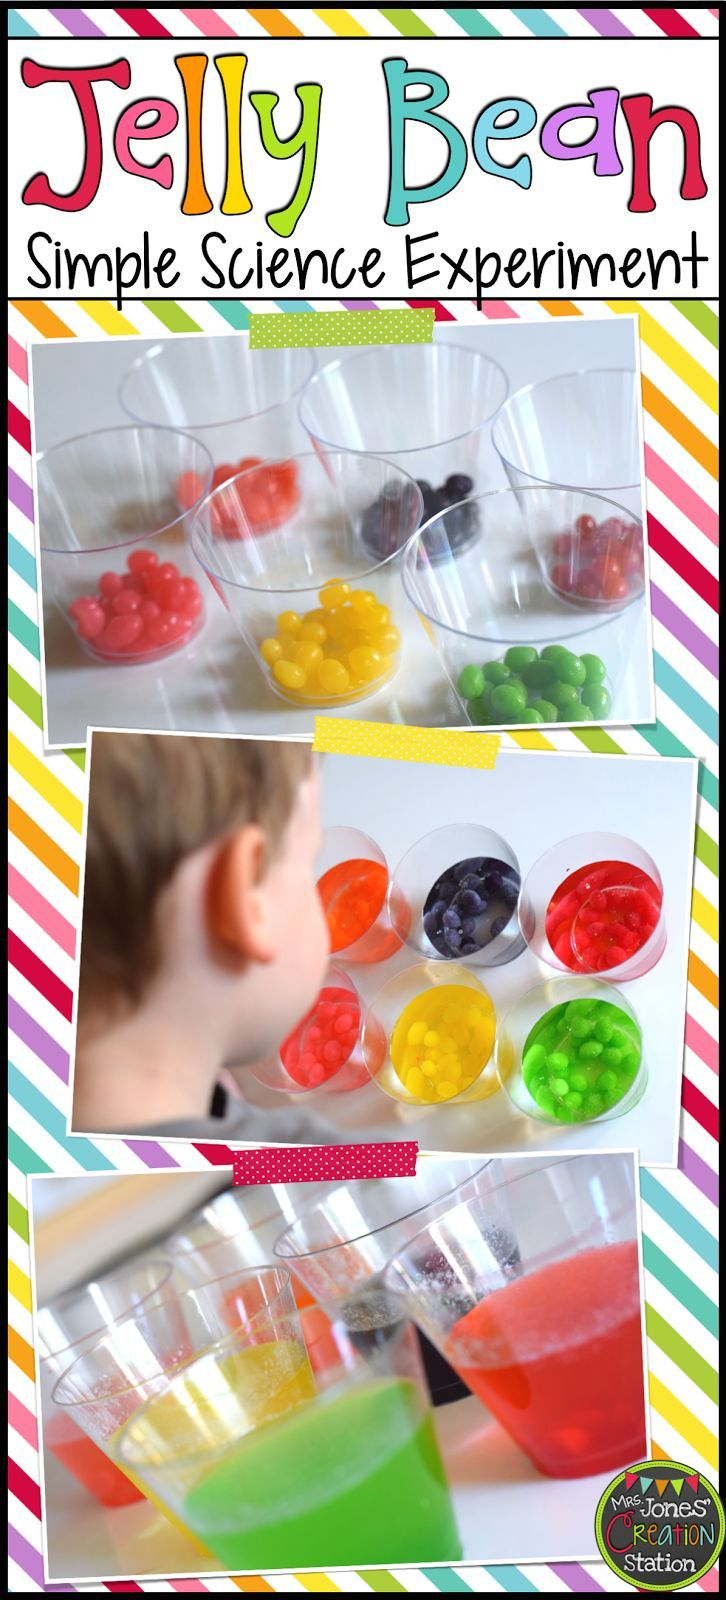 Jelly Bean Simple Science Experiment + Free Experiment page printable